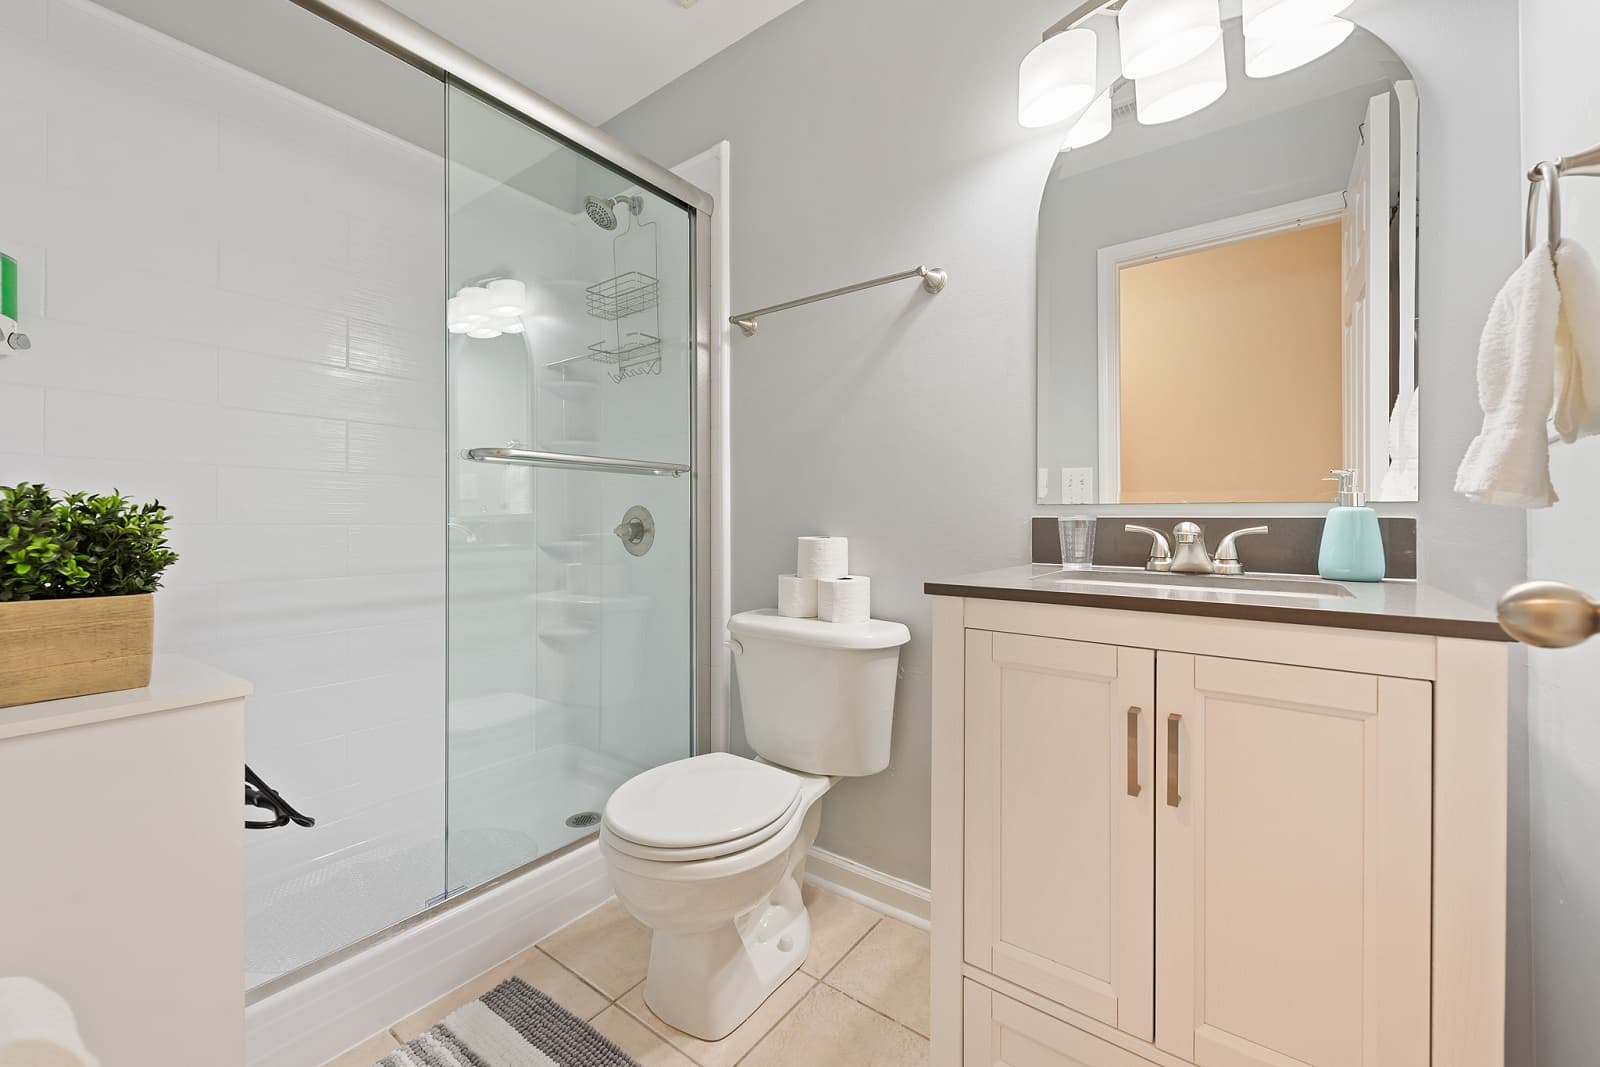 Real Estate Photography in Charlotte - NC - USA - Bathroom View